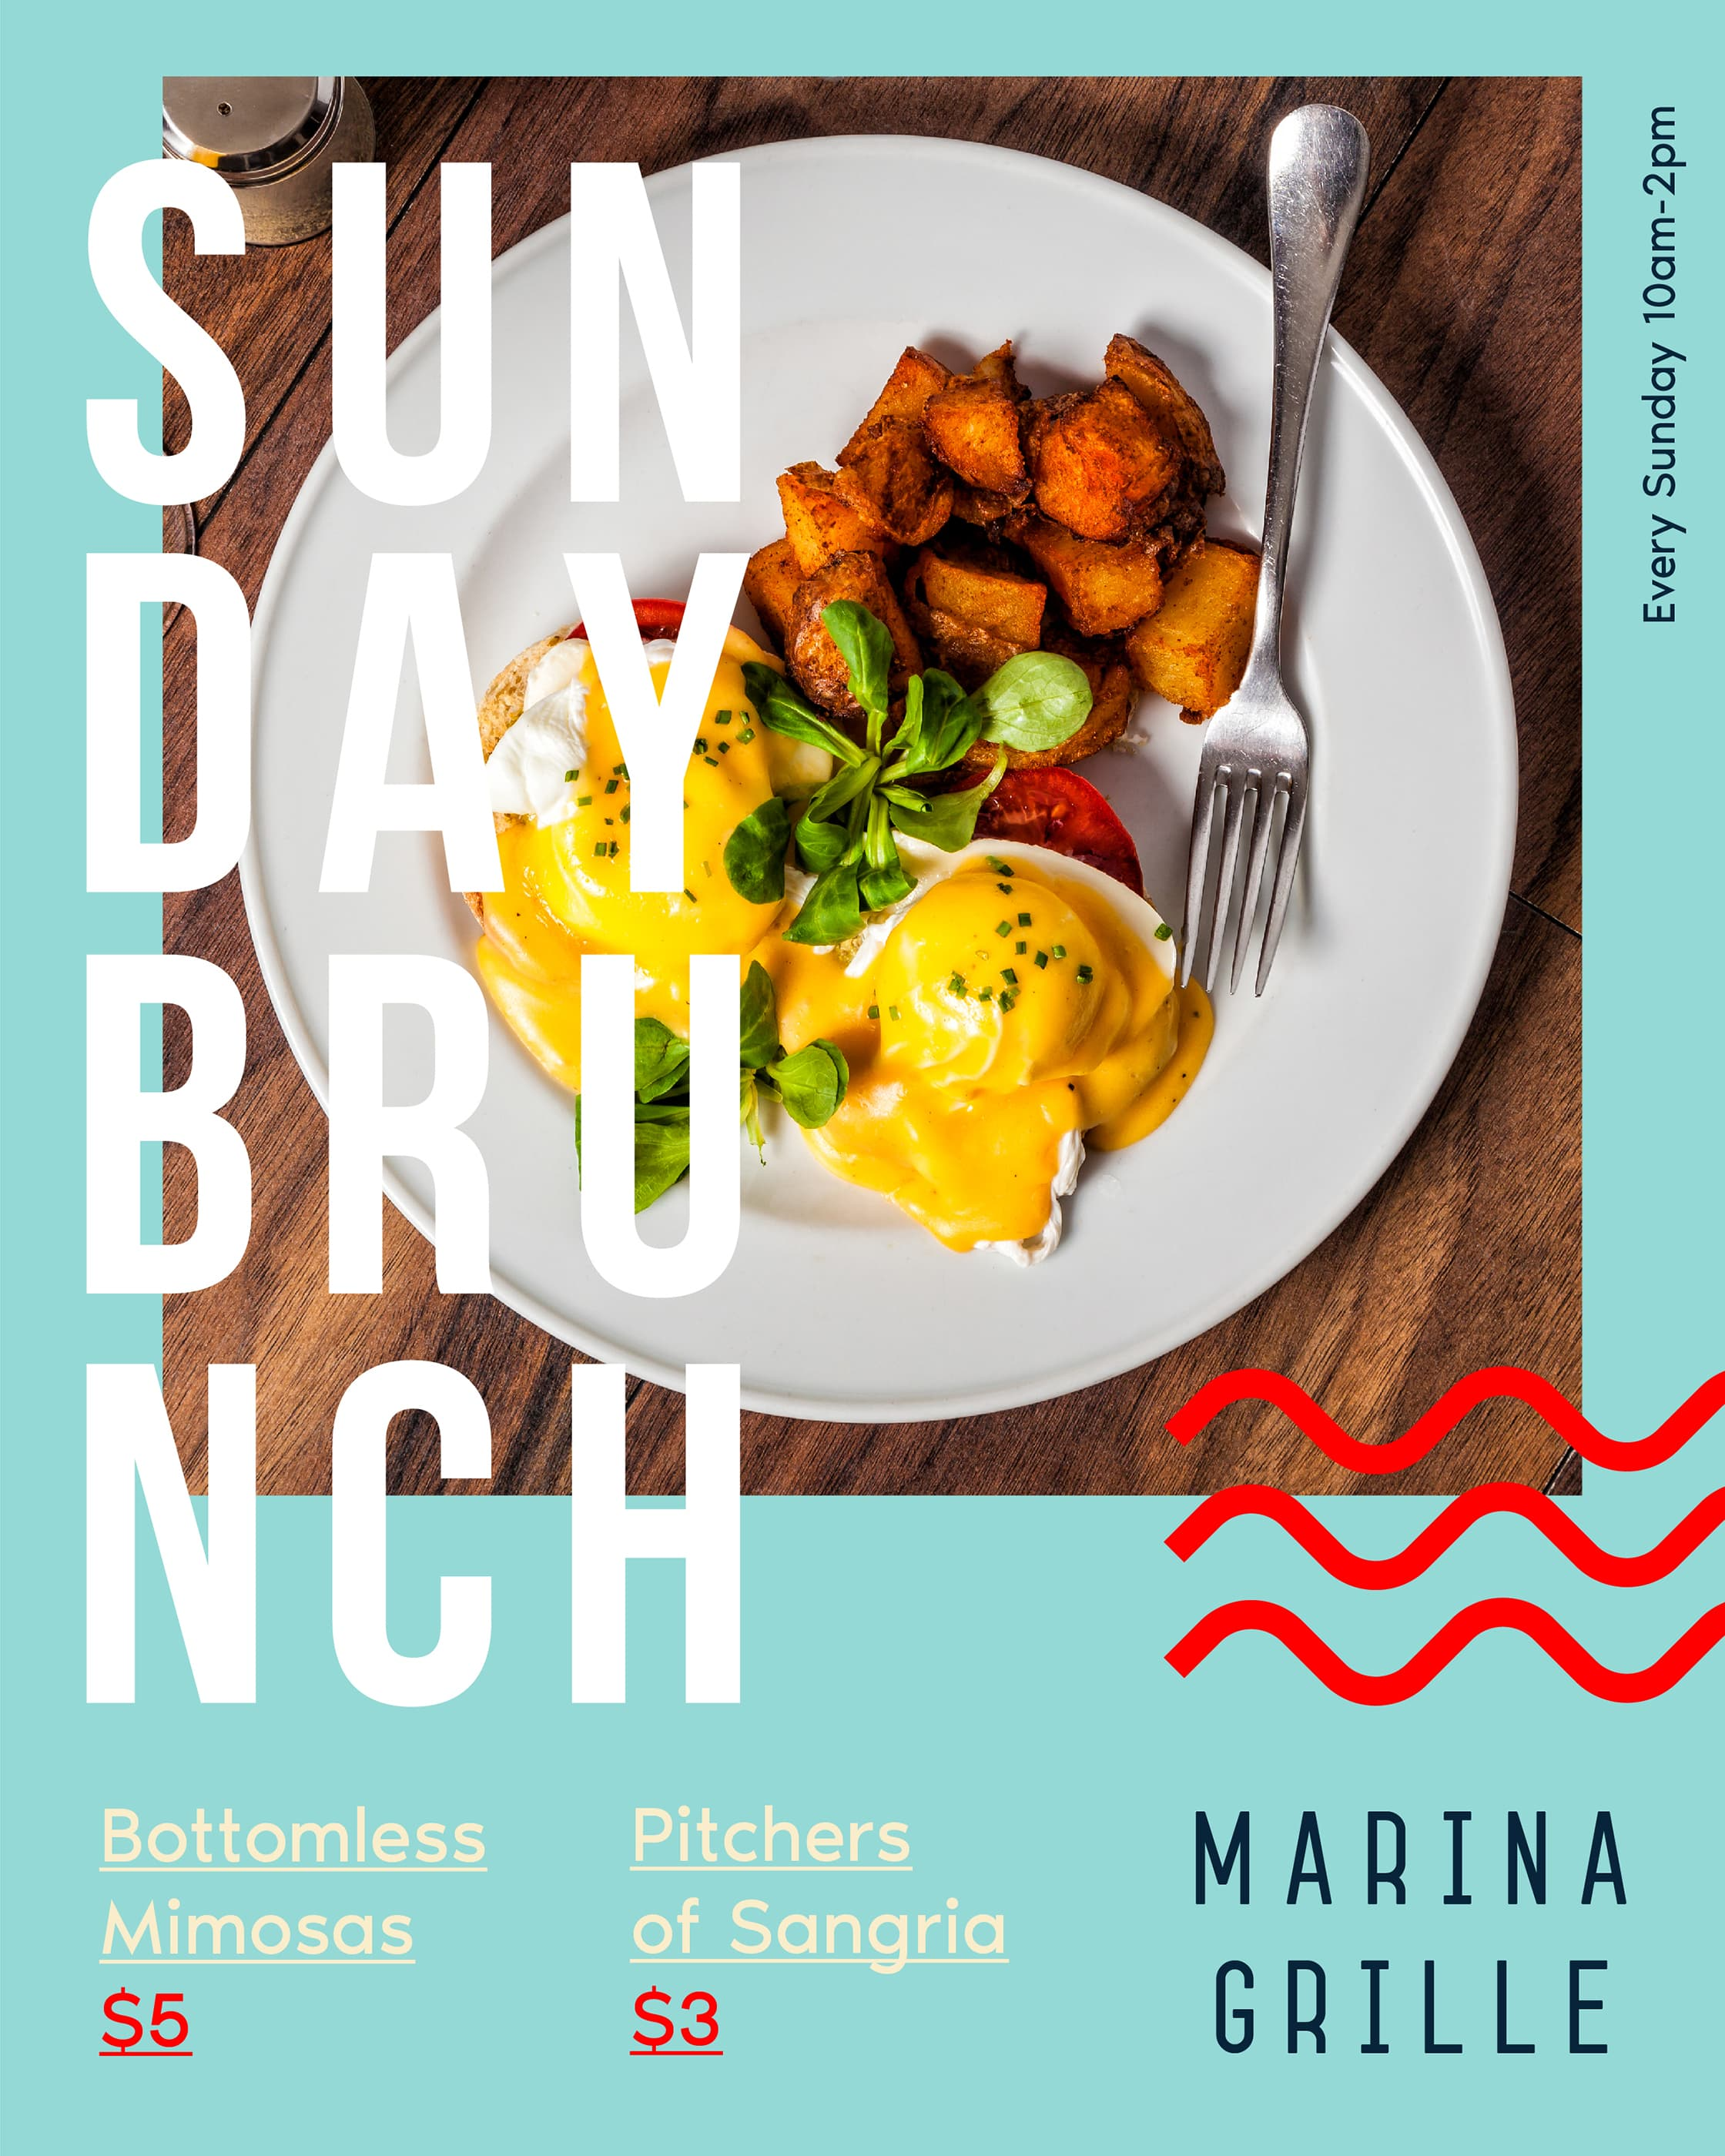 Marina Grille Sunday Brunch Ad